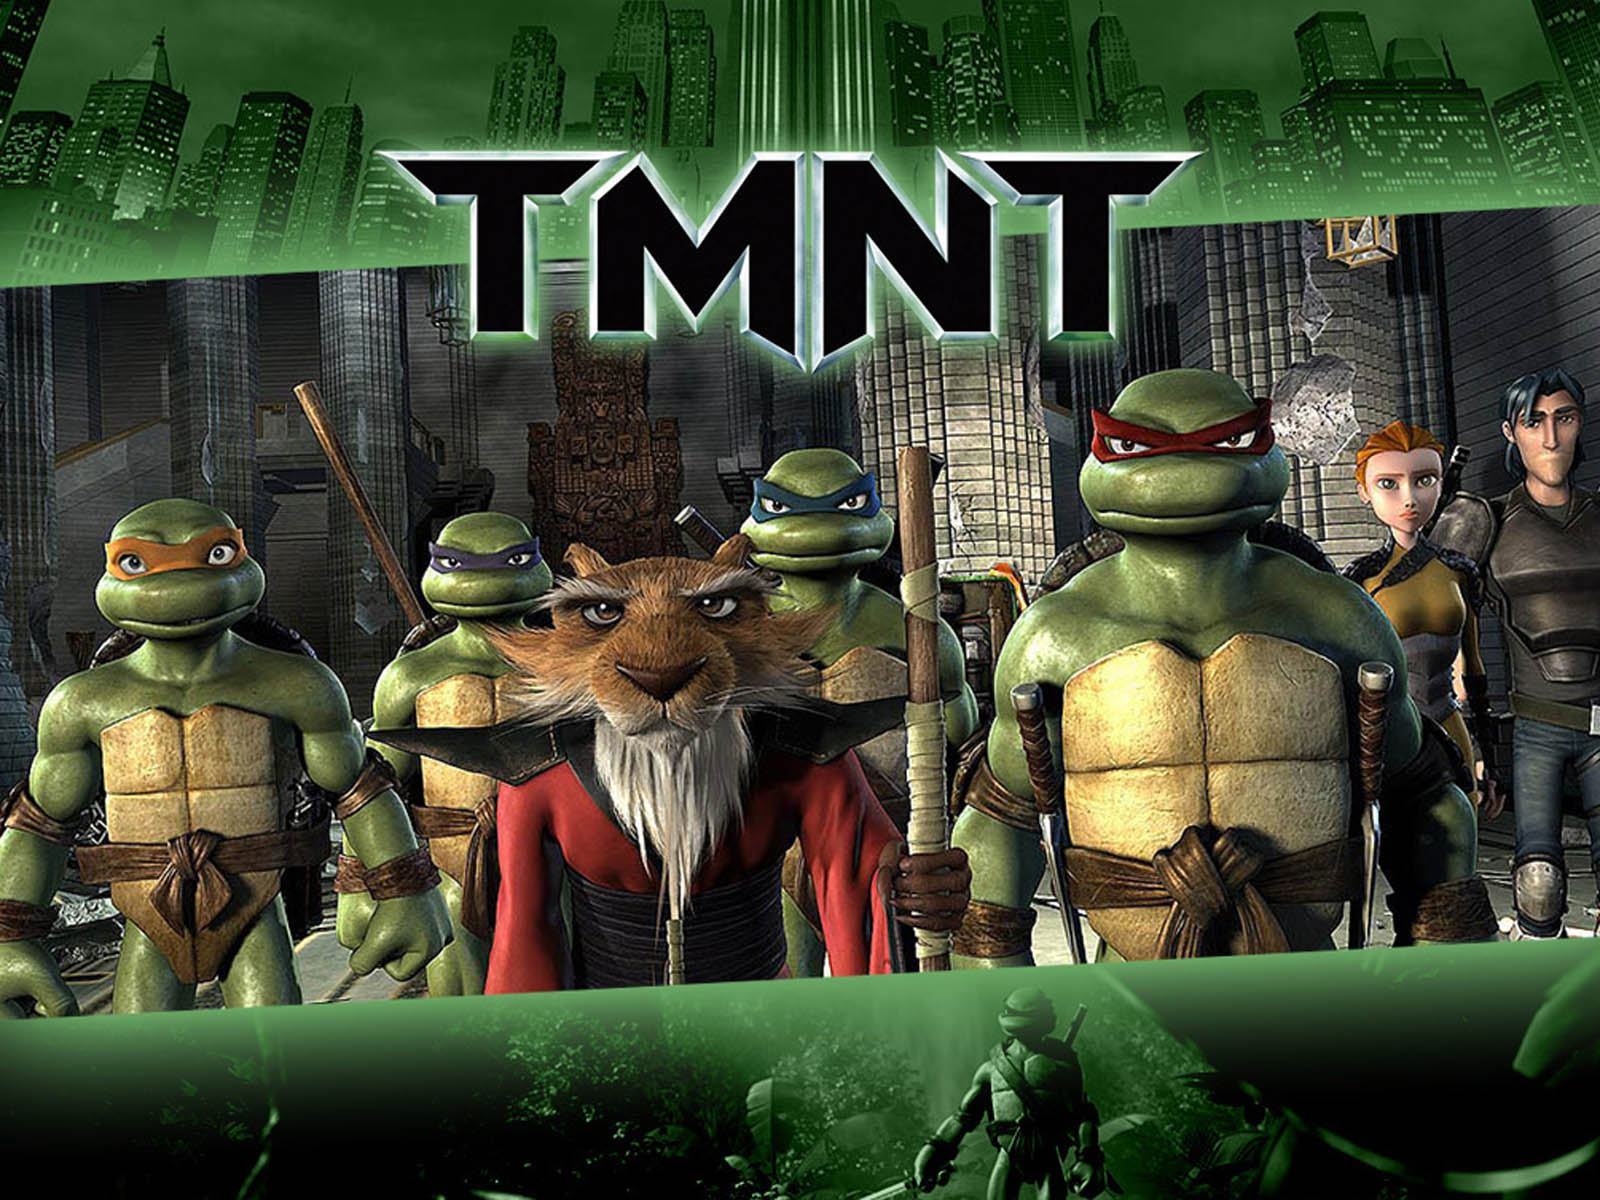 Teenage Mutant Ninja Turtles TMNT WPer Wallpaper